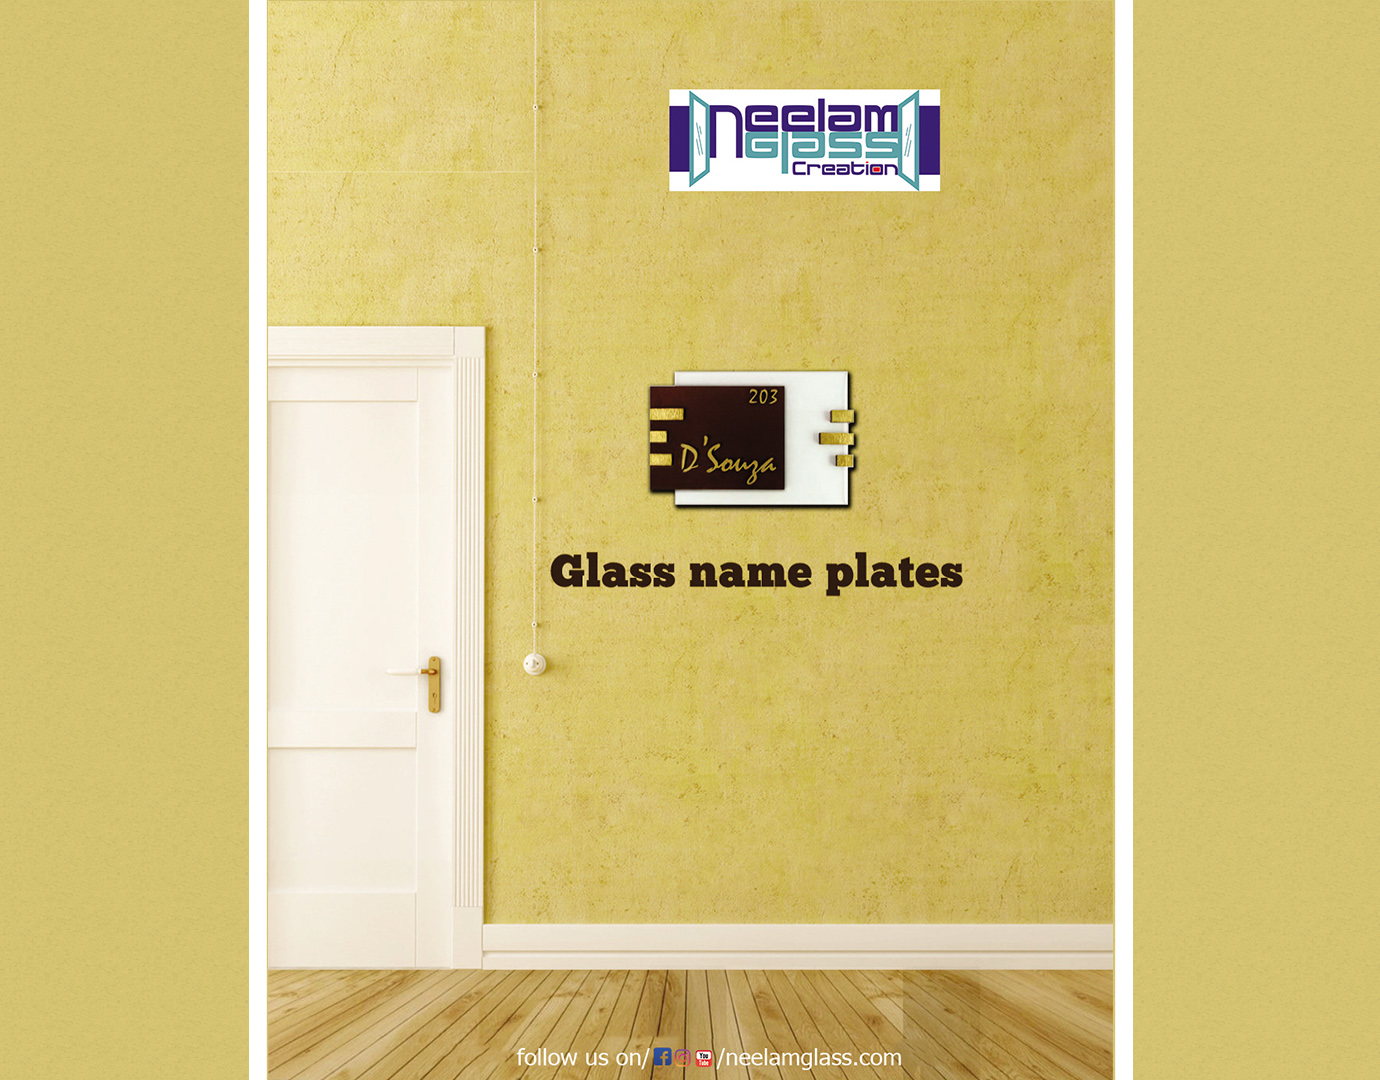 7.Glass namee plate